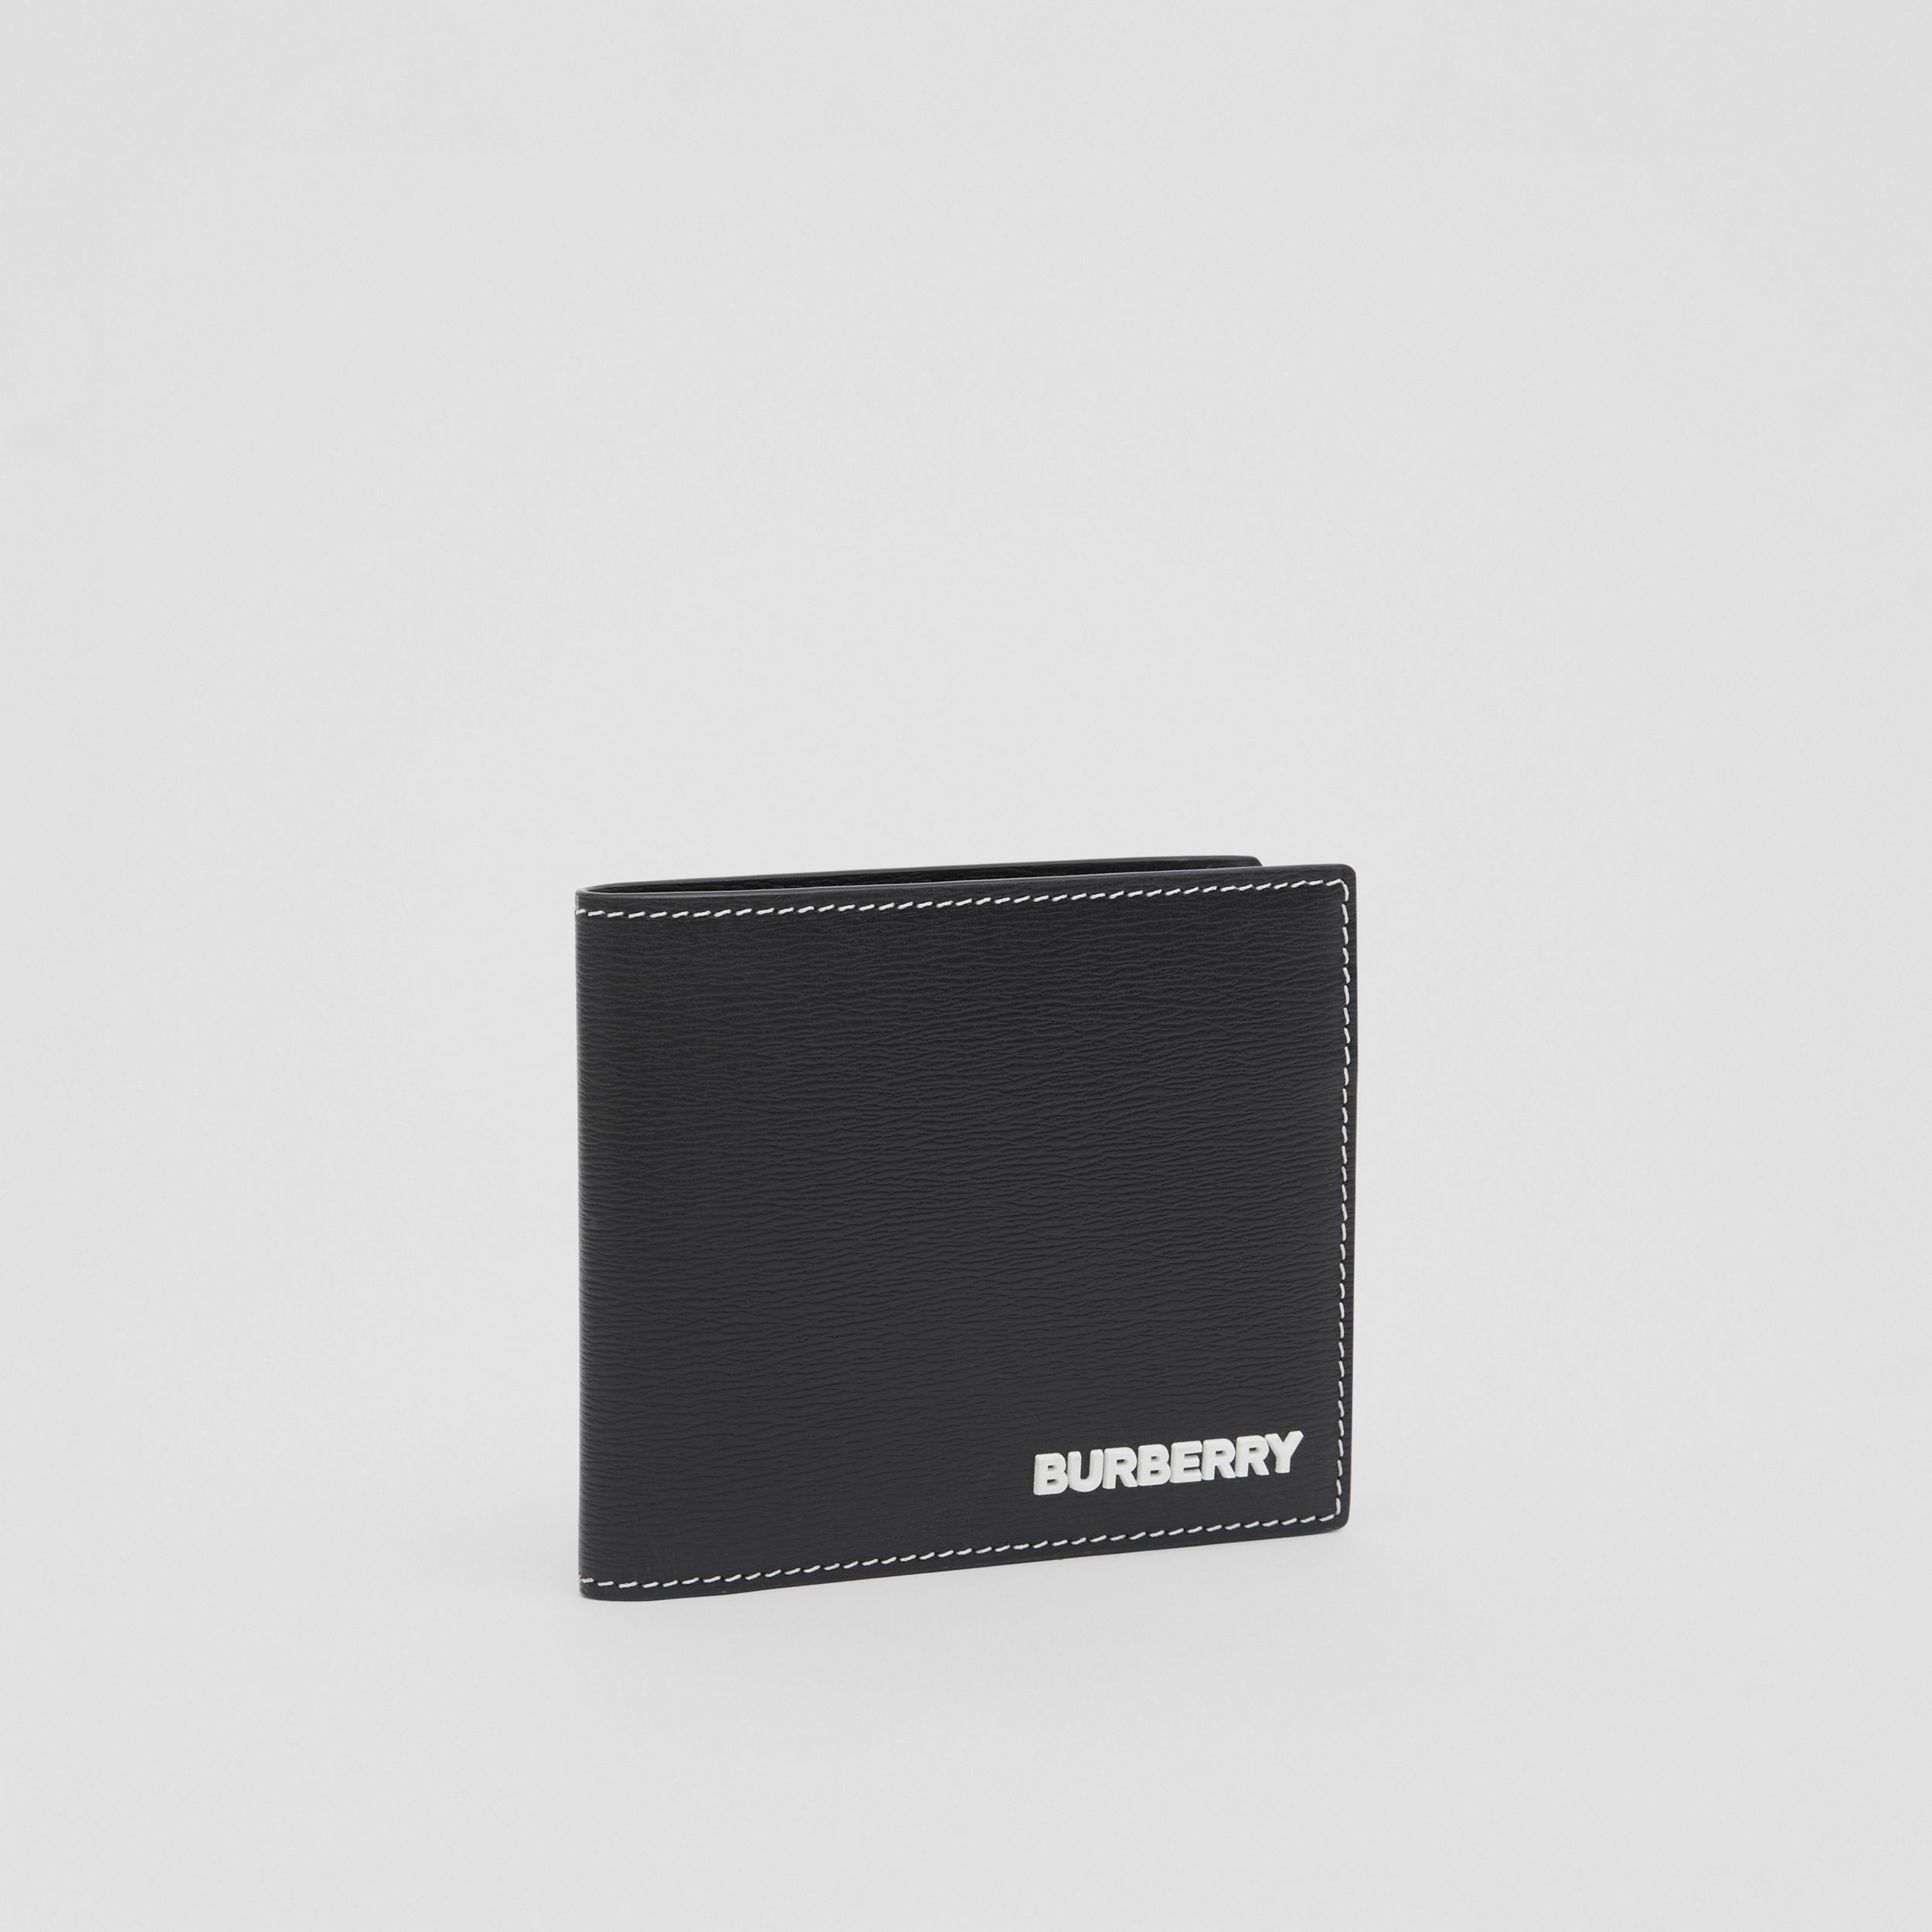 Topstitched Grainy Leather International Bifold Wallet in Black - Men | Burberry - 4